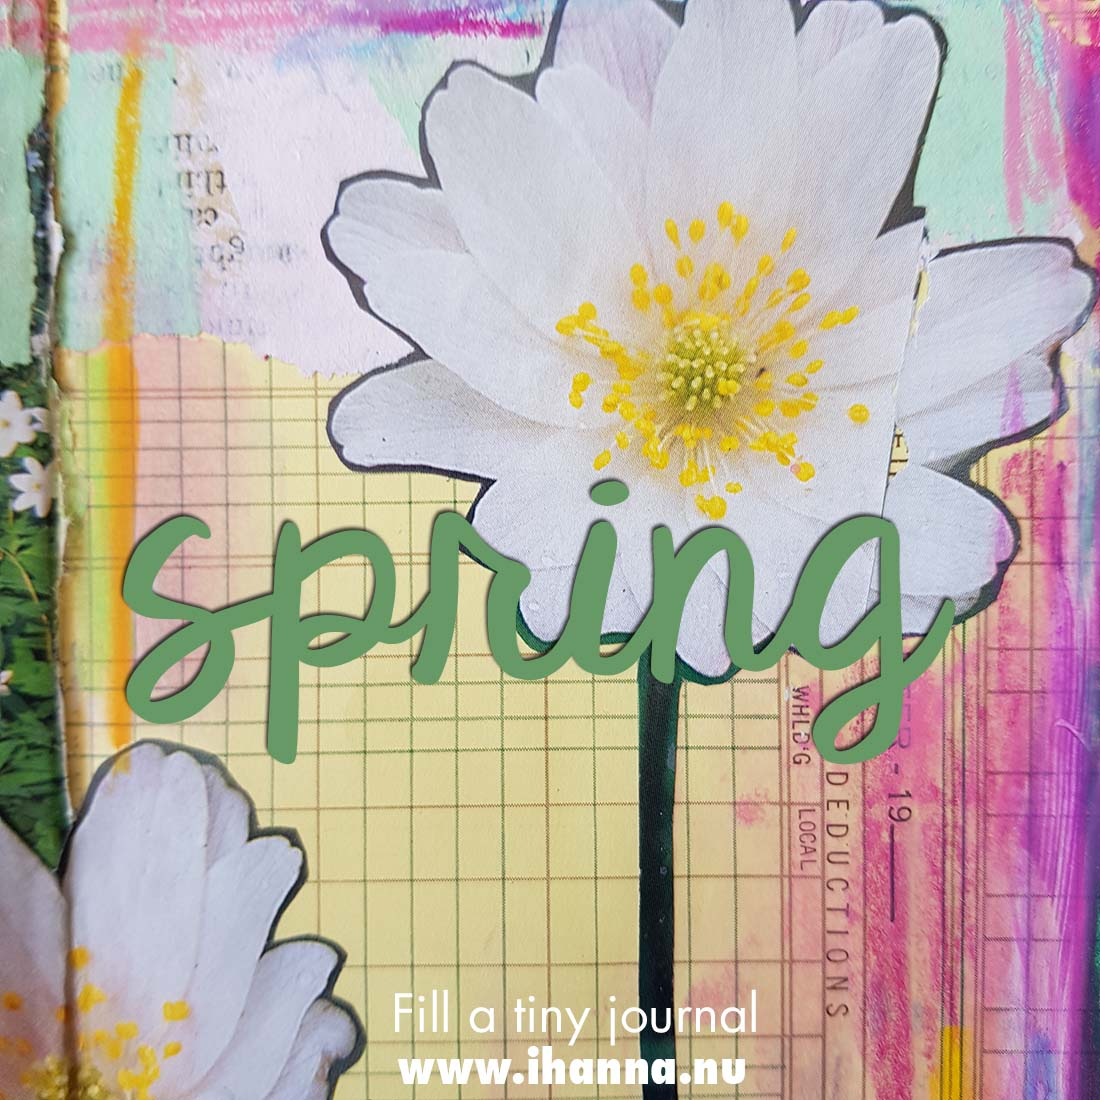 Fill a tiny journal (spring prompt presented) with Tammy and Hanna #fillatinyjournal